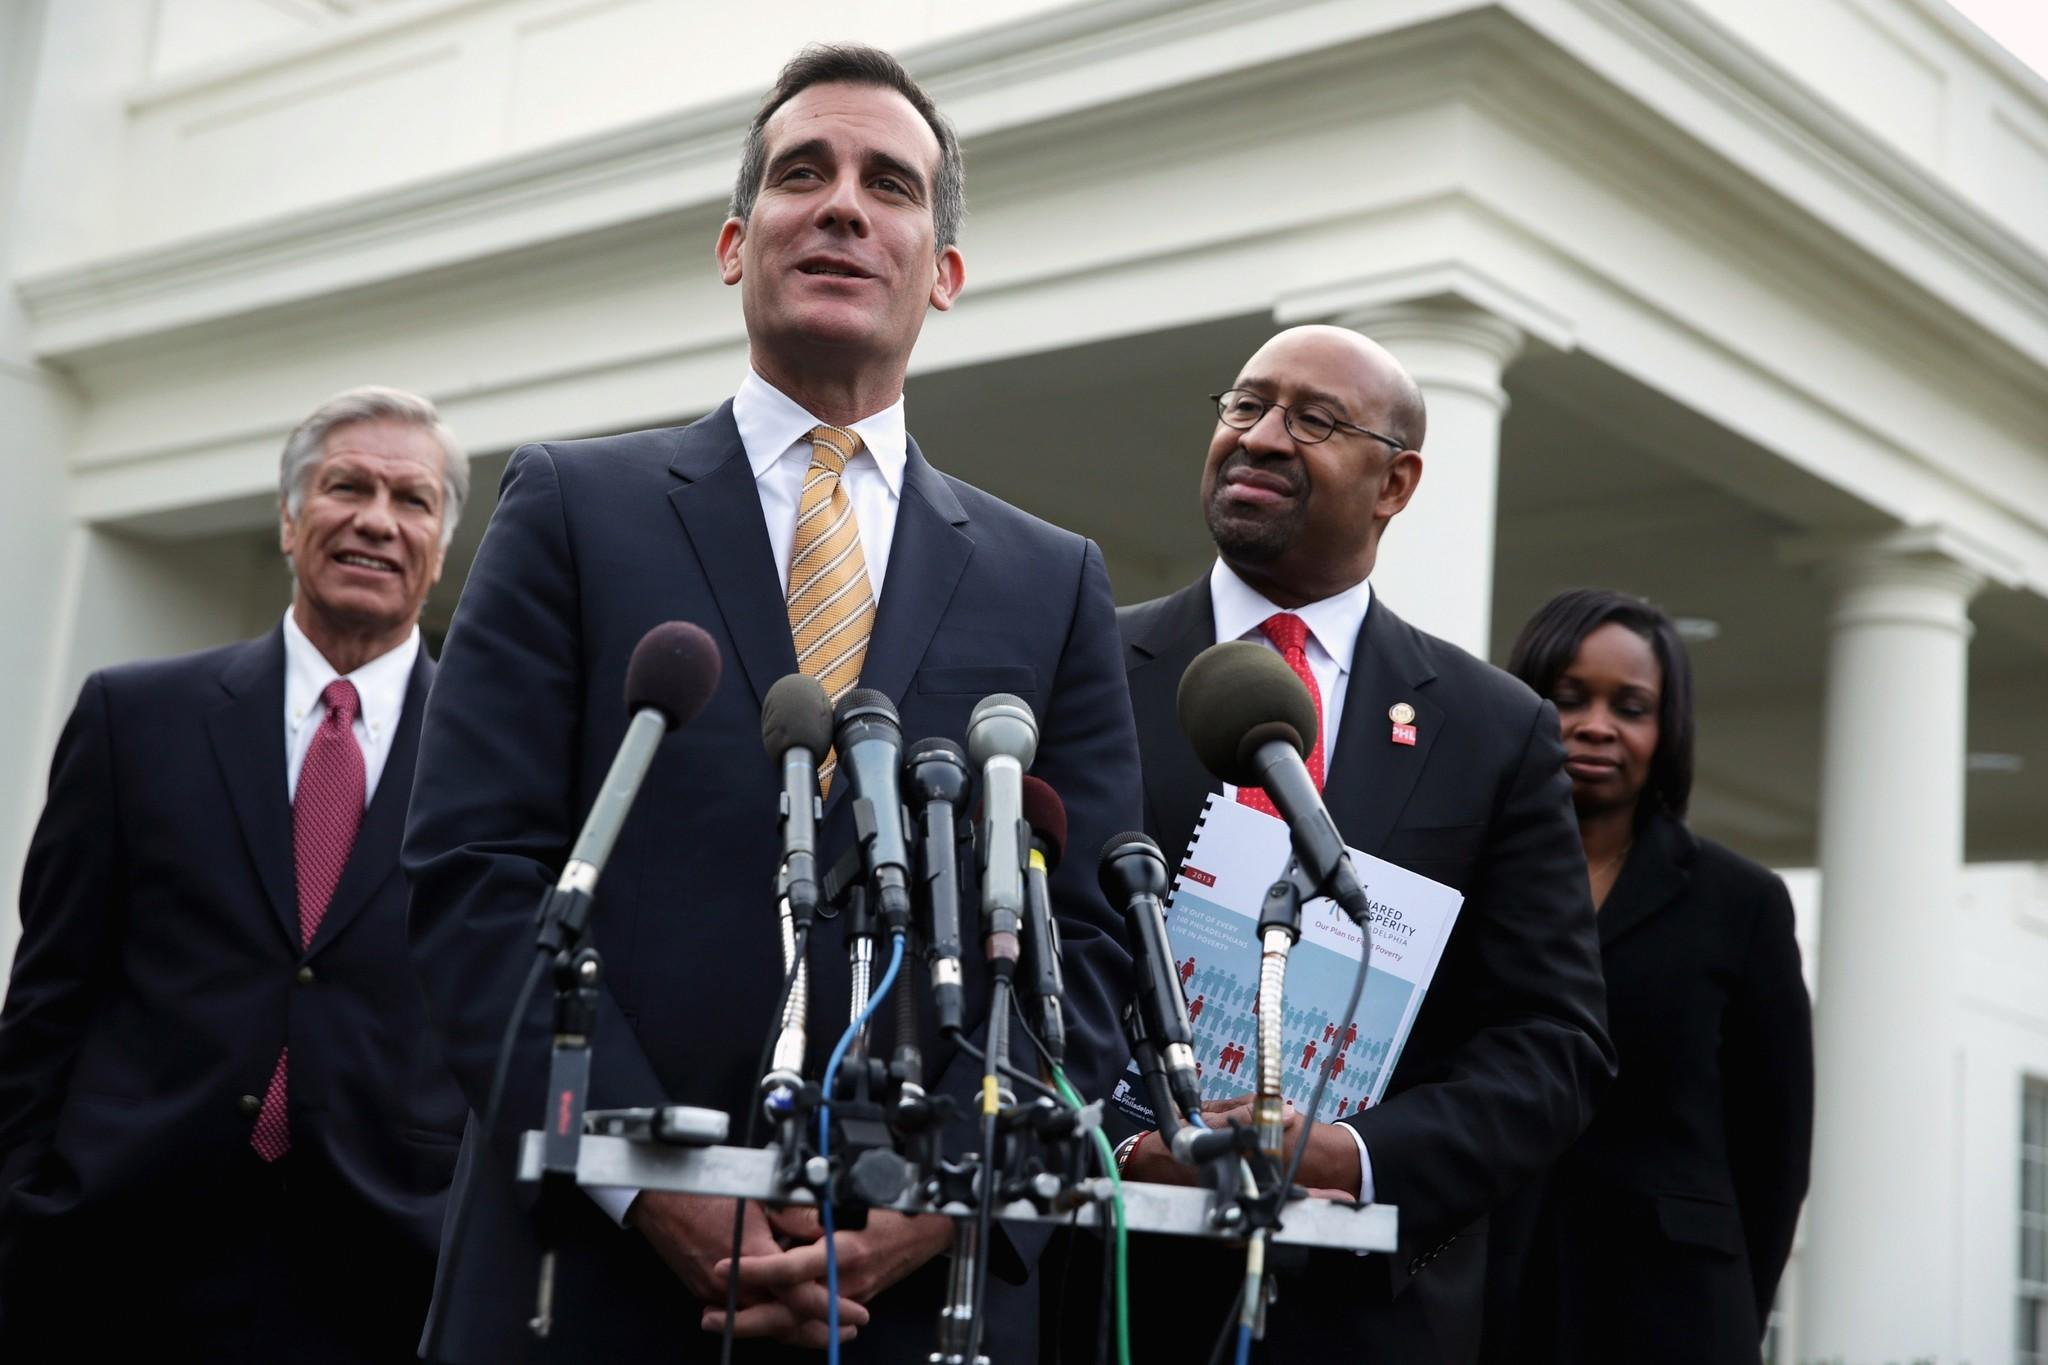 Philadelphia Mayor Michael Nutter, third from left, Los Angeles Mayor Eric Garcetti, speaking, and Chief Gregory Pyle of the Choctaw Nation of Oklahoma, meet members of the media after a White House event where President Obama announced the creation of Promise Zones.